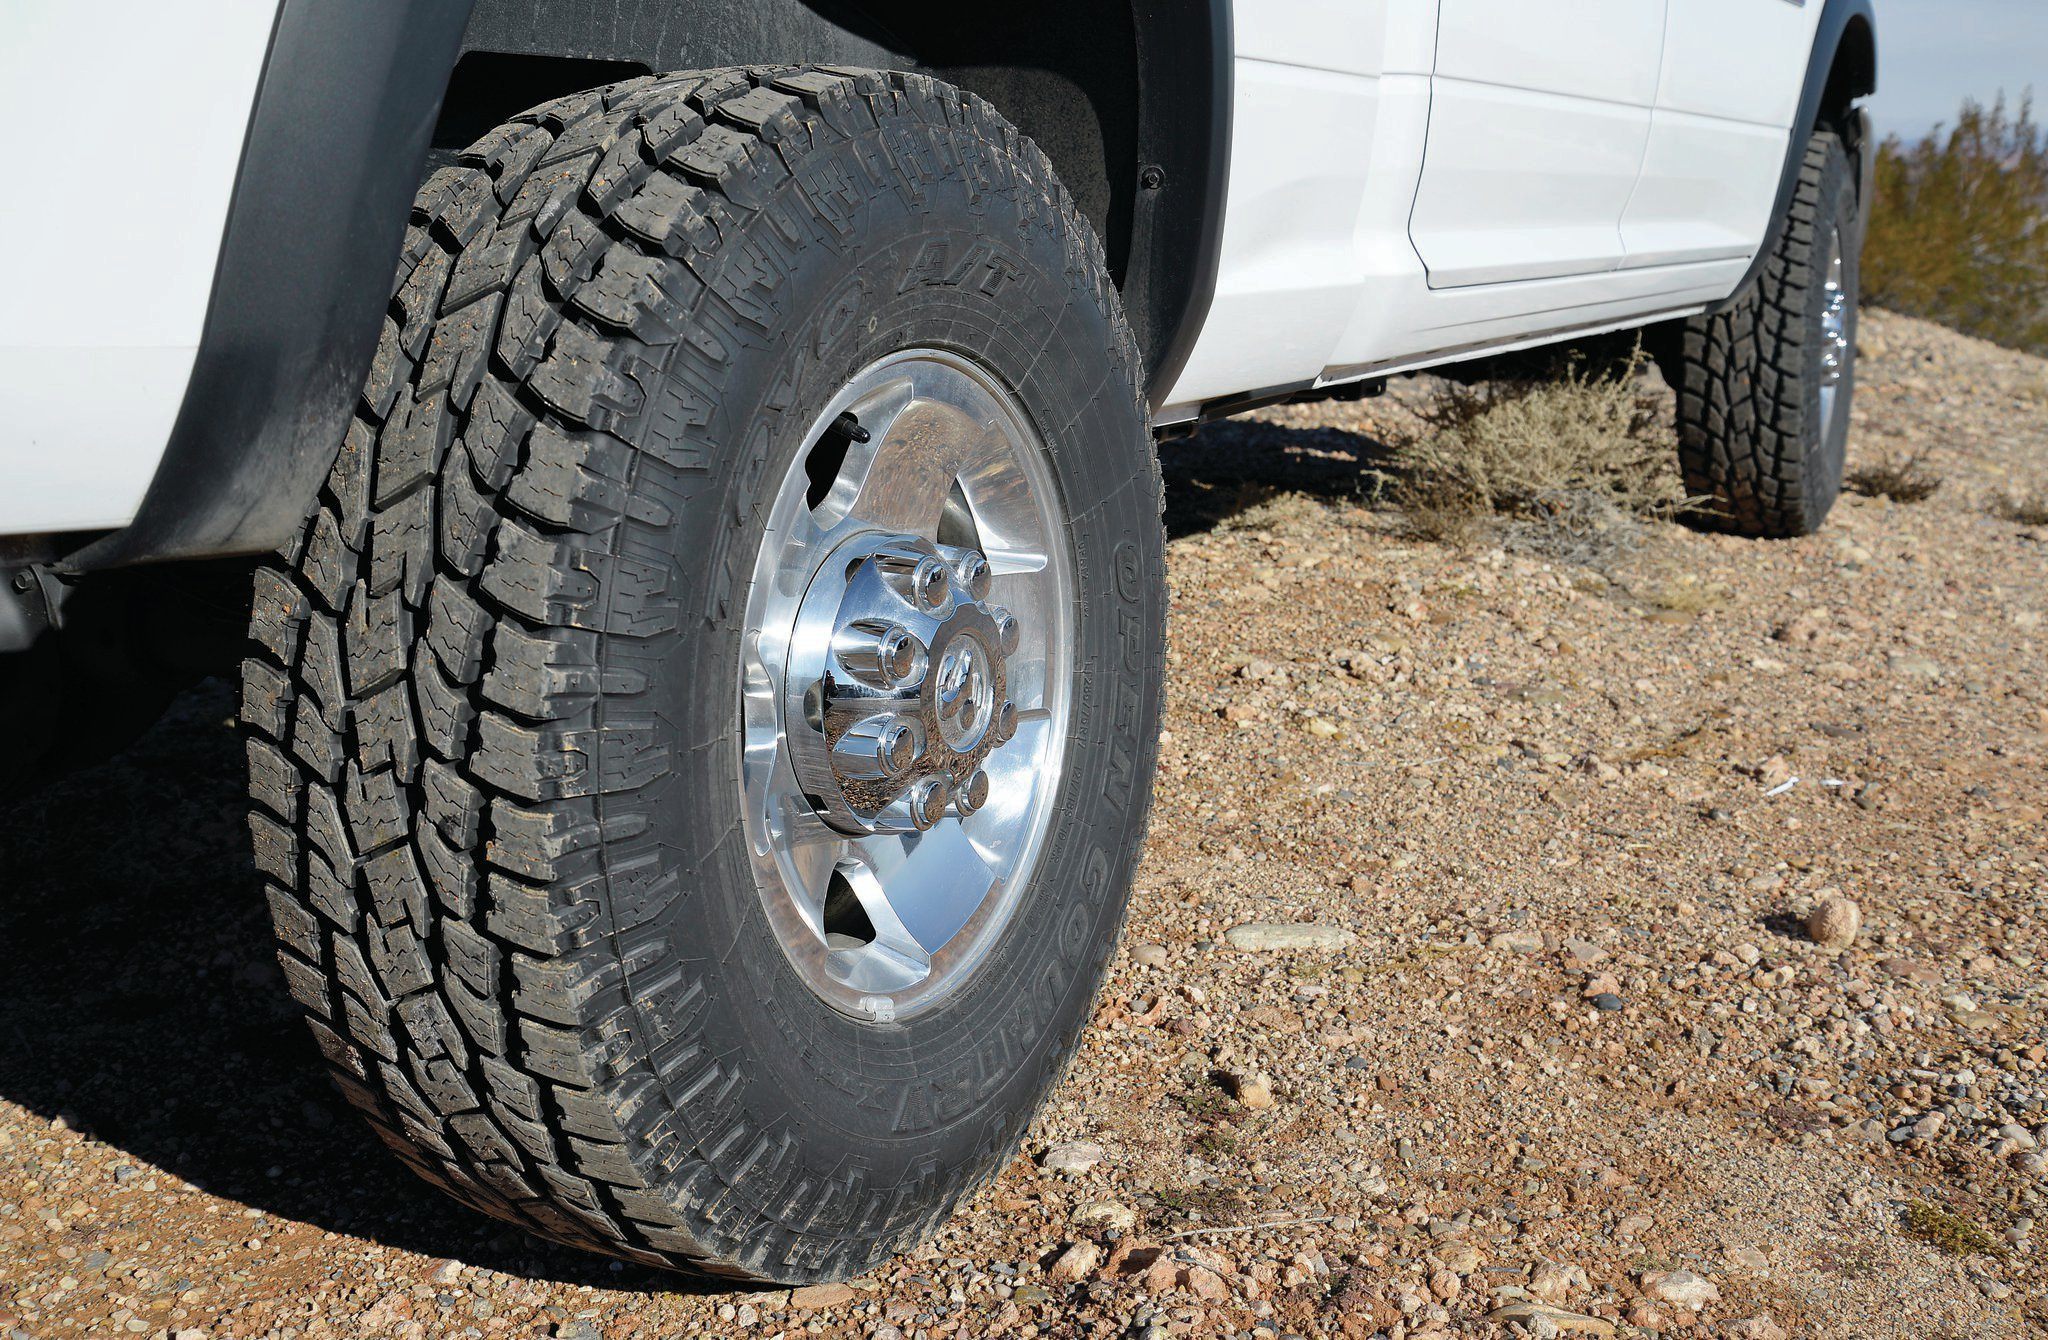 The LT285/75R17 Toyo Open Country A/T II tires on our test vehicle took very little weight to balance. Translating to 34 inches tall and 11 inches wide, this size is good for those wanting a larger tire, but who still want to use their 4x4 on the road.